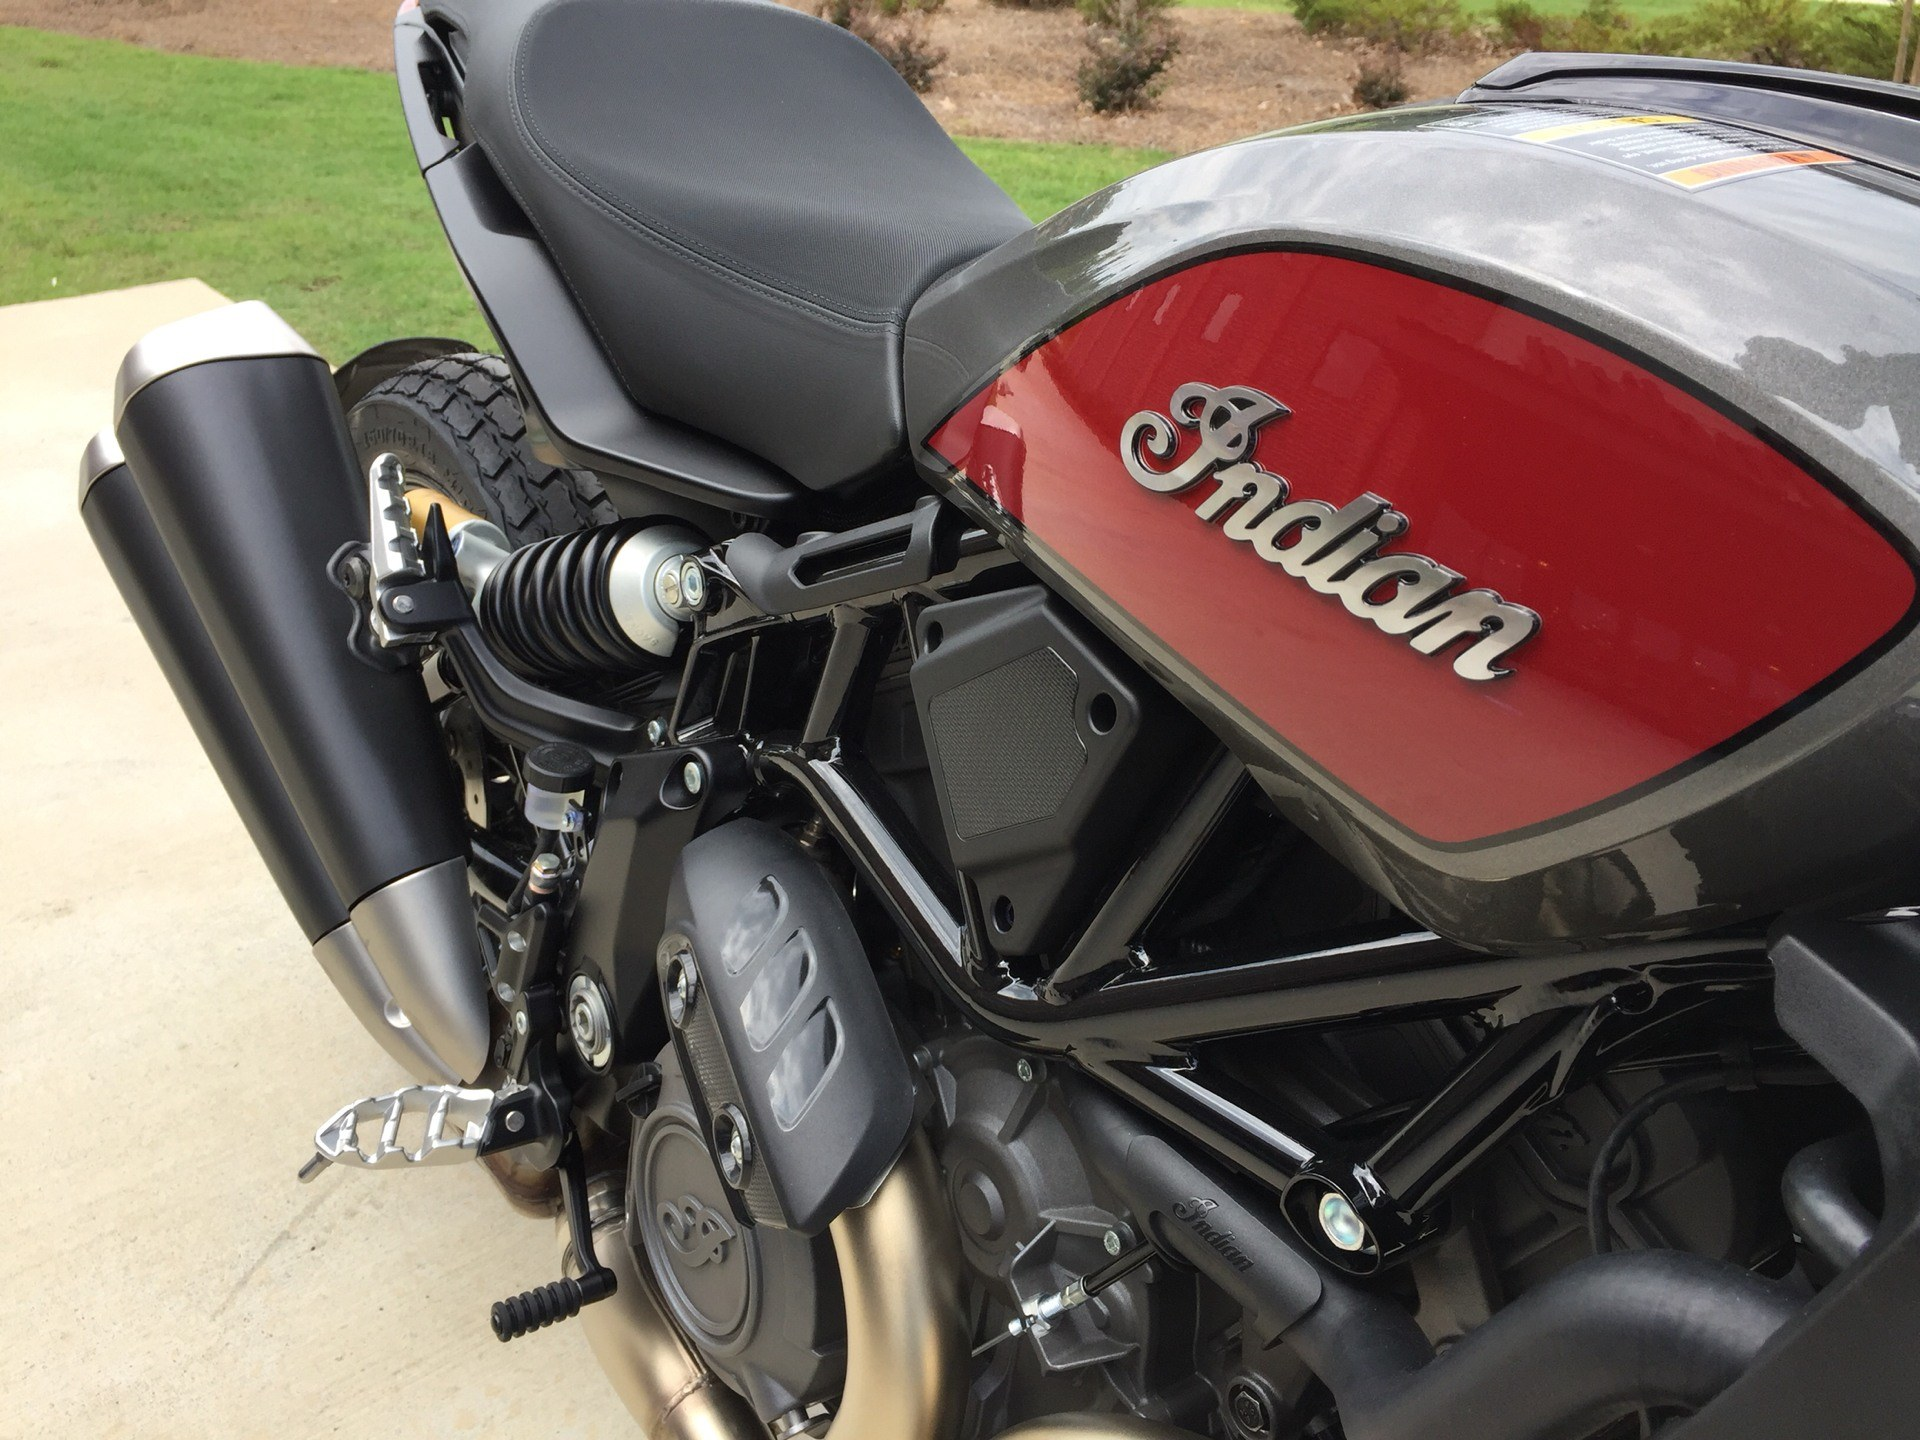 2019 Indian FTR™ 1200 S in Buford, Georgia - Photo 9